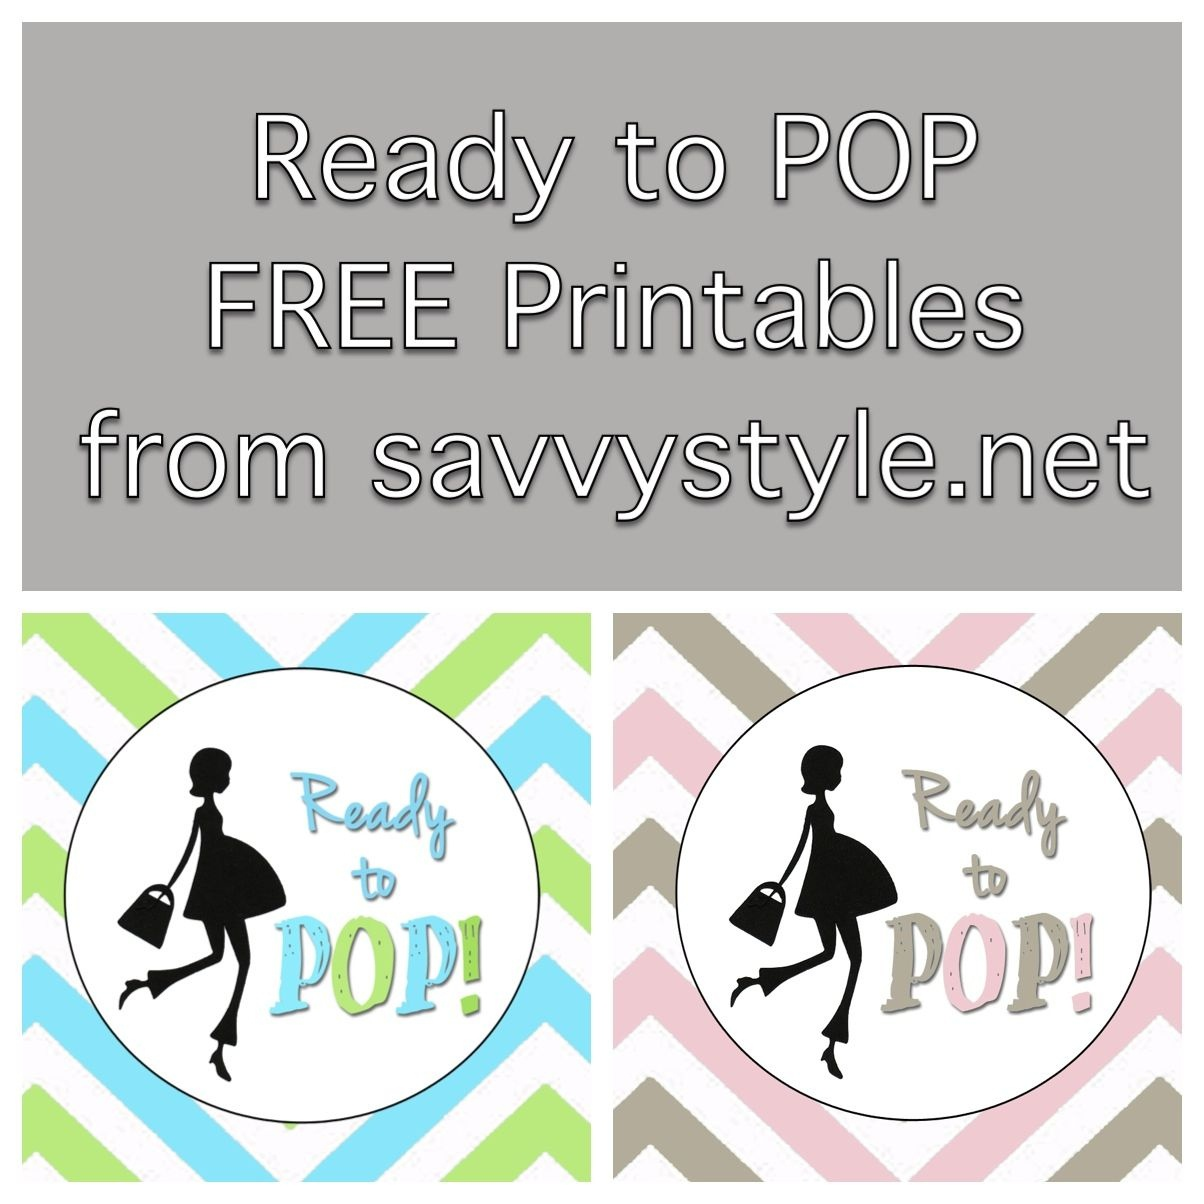 Ready To Pop Baby Shower Free Printables   Baby Shower In 2019 - Free Printable Ready To Pop Labels